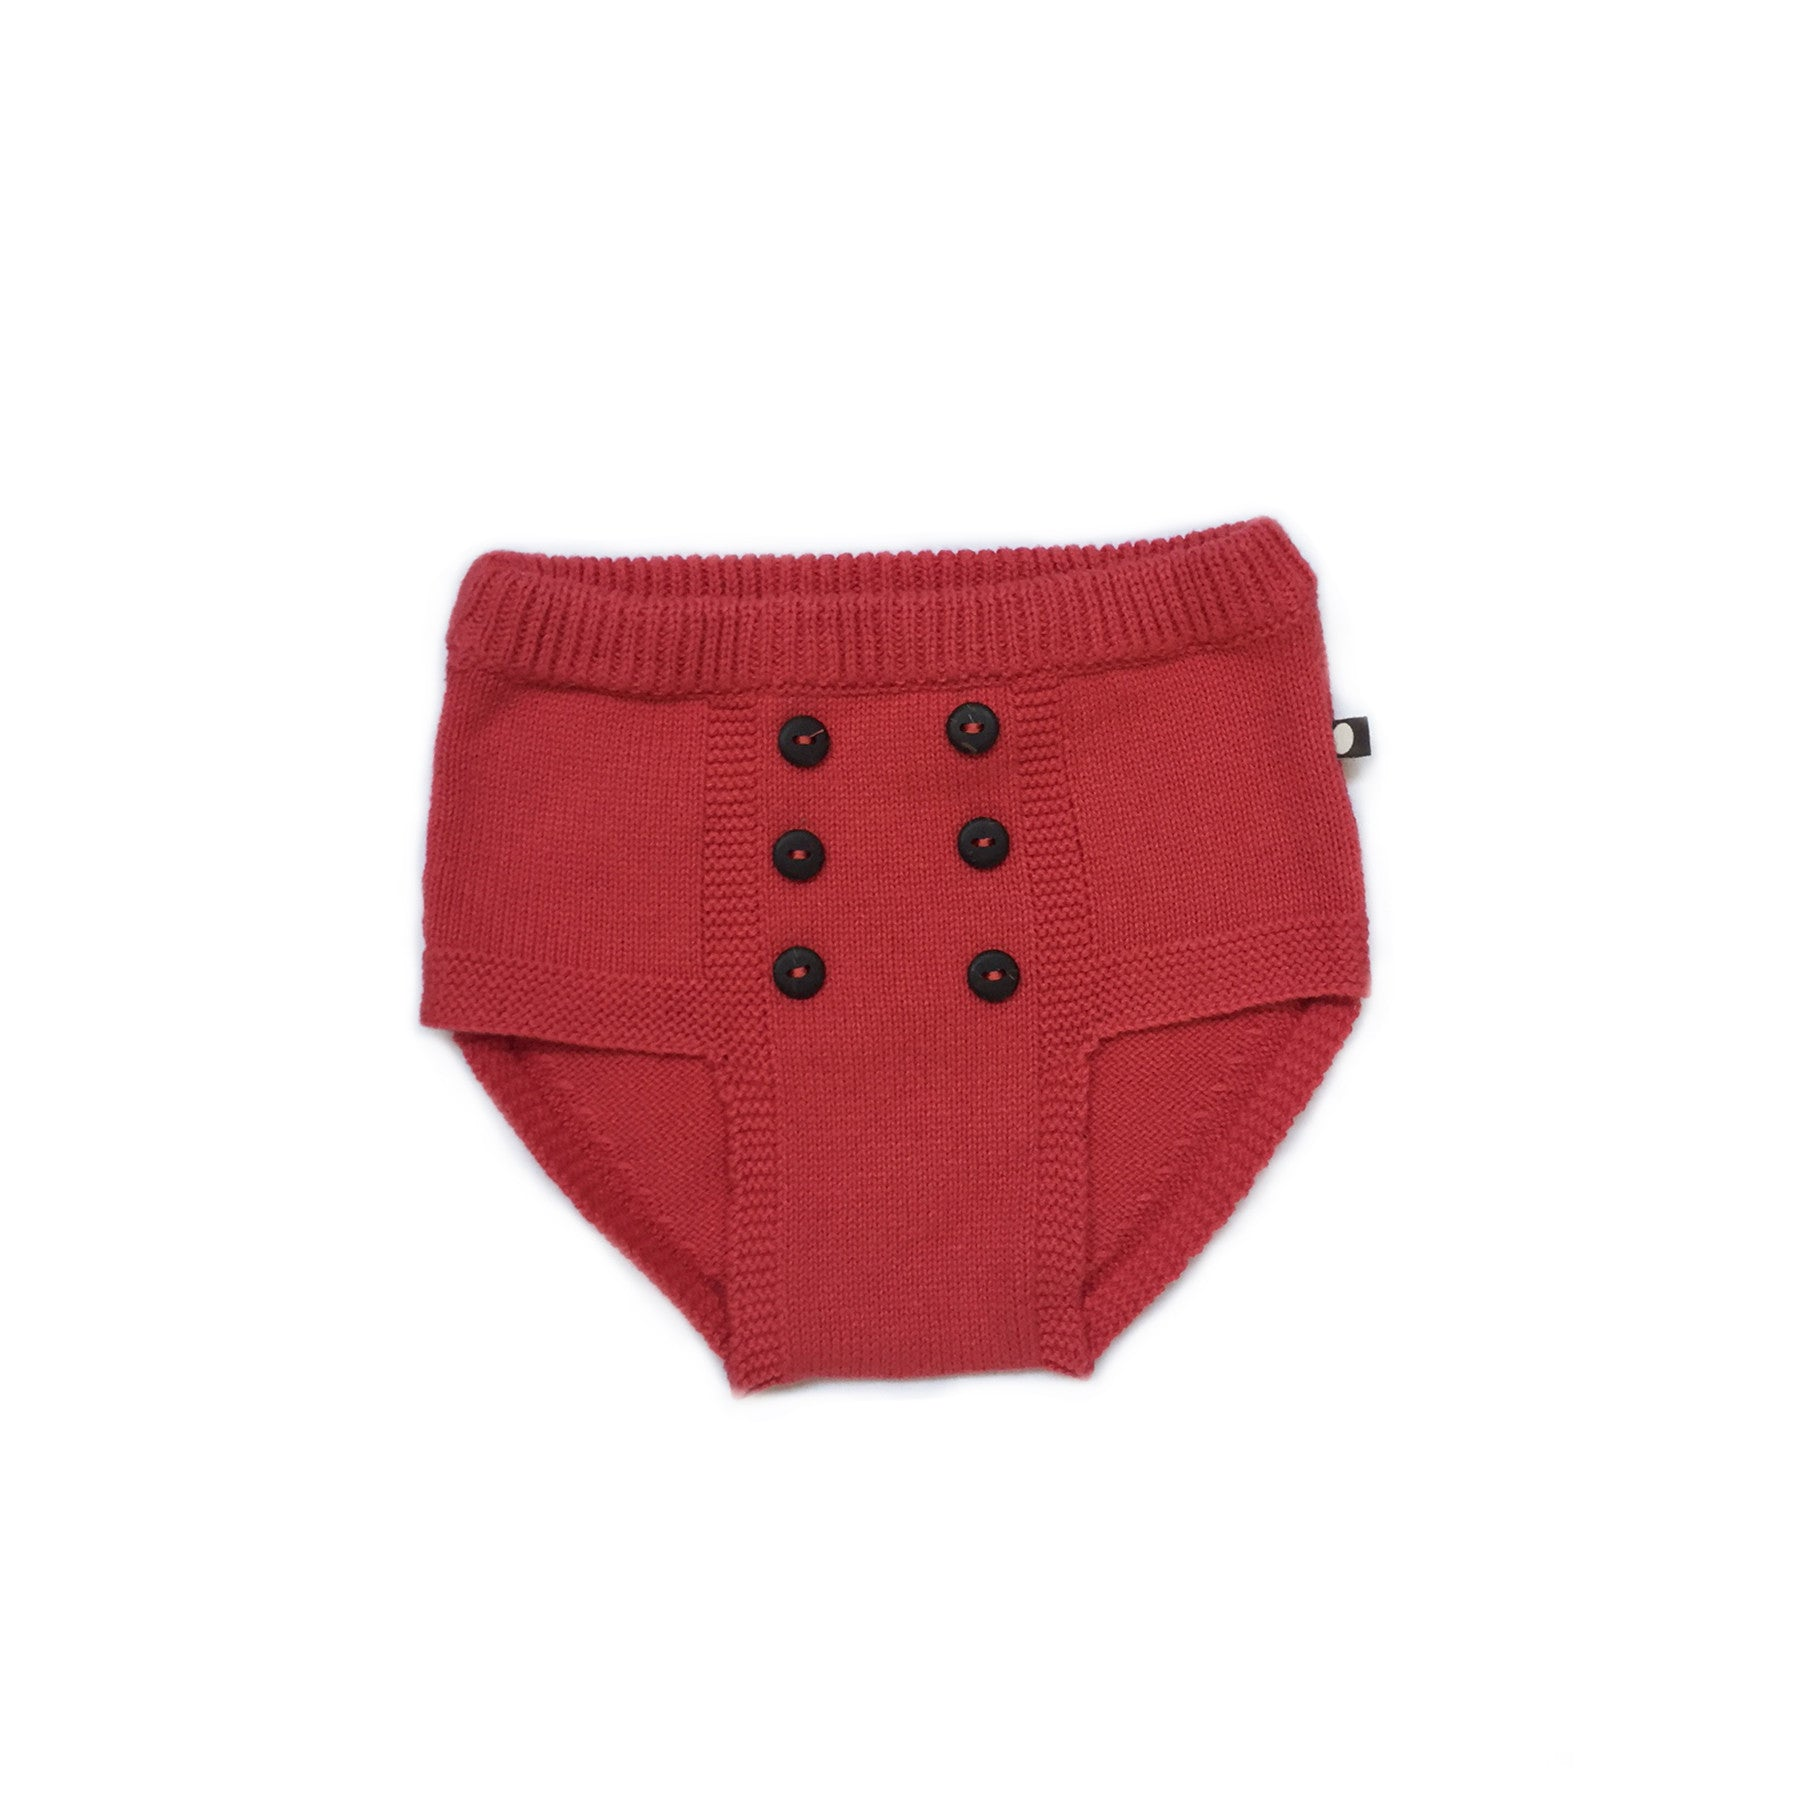 Oeuf Red Retro Diaper Cover - Ladida